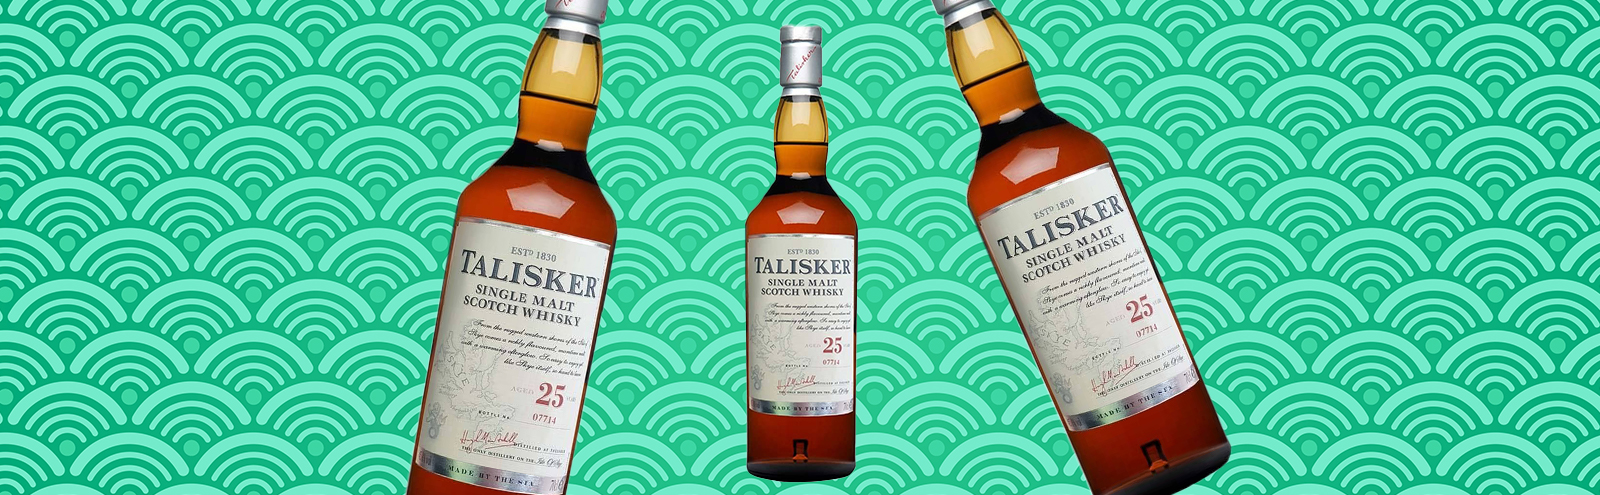 We Can't Find A Single Fault With This 25-Year-Old Single Malt Scotch Whisky